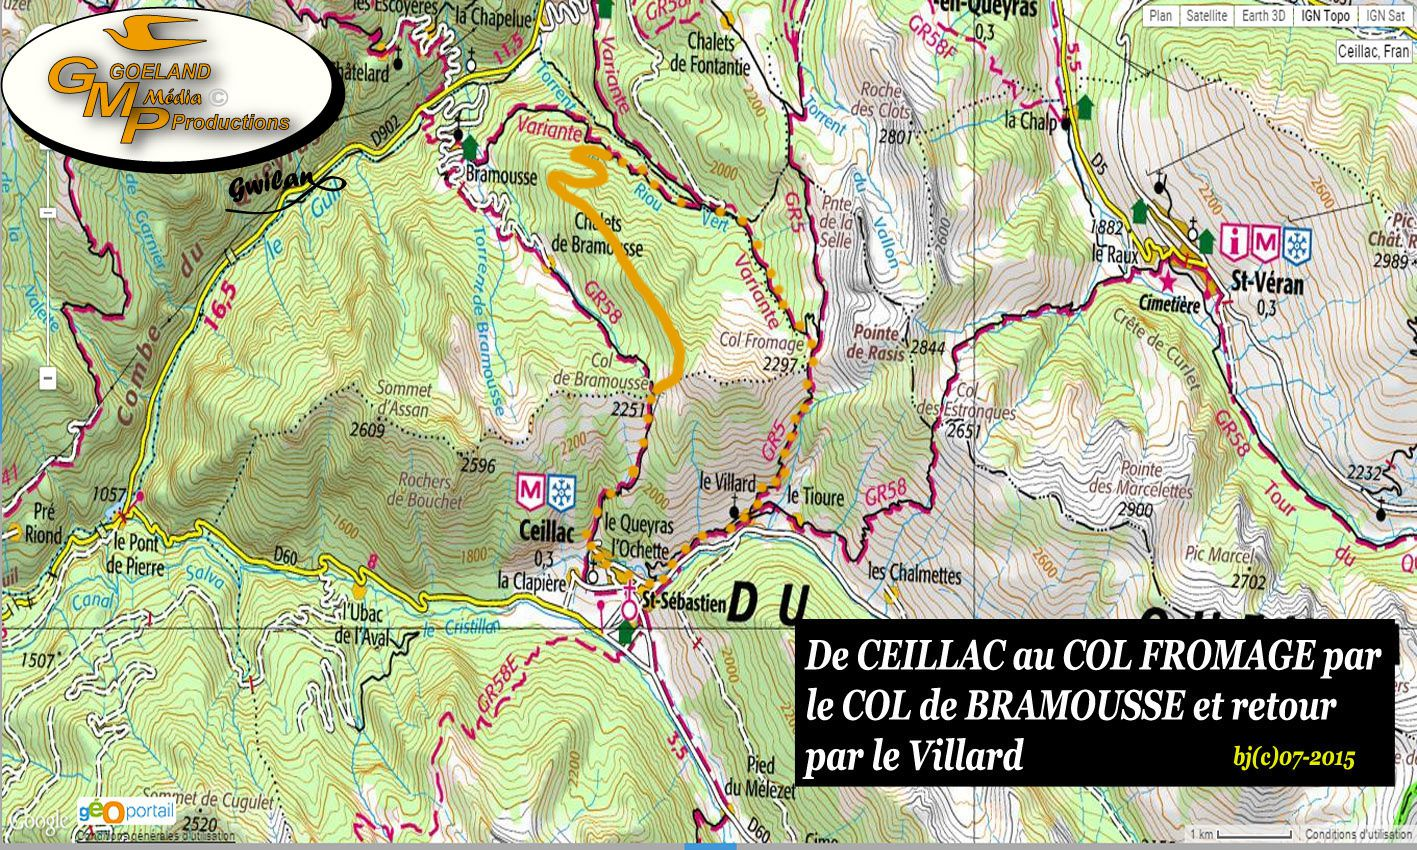 col fromage-col de bramousse-blog dranreb0434